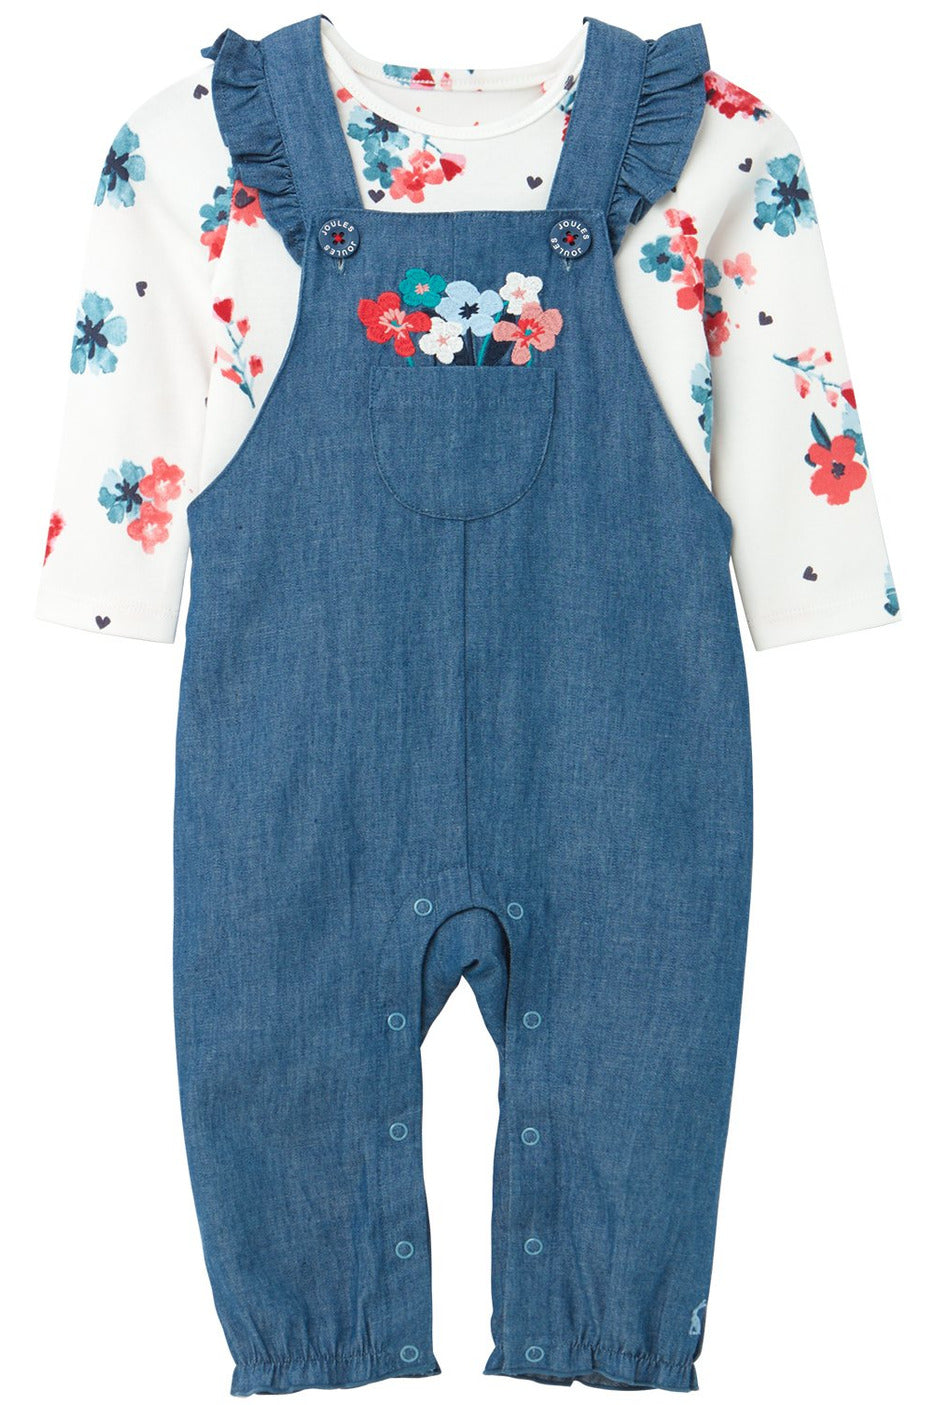 FLORAL EMBROIDERED OVERALLS & BODYSUIT SET